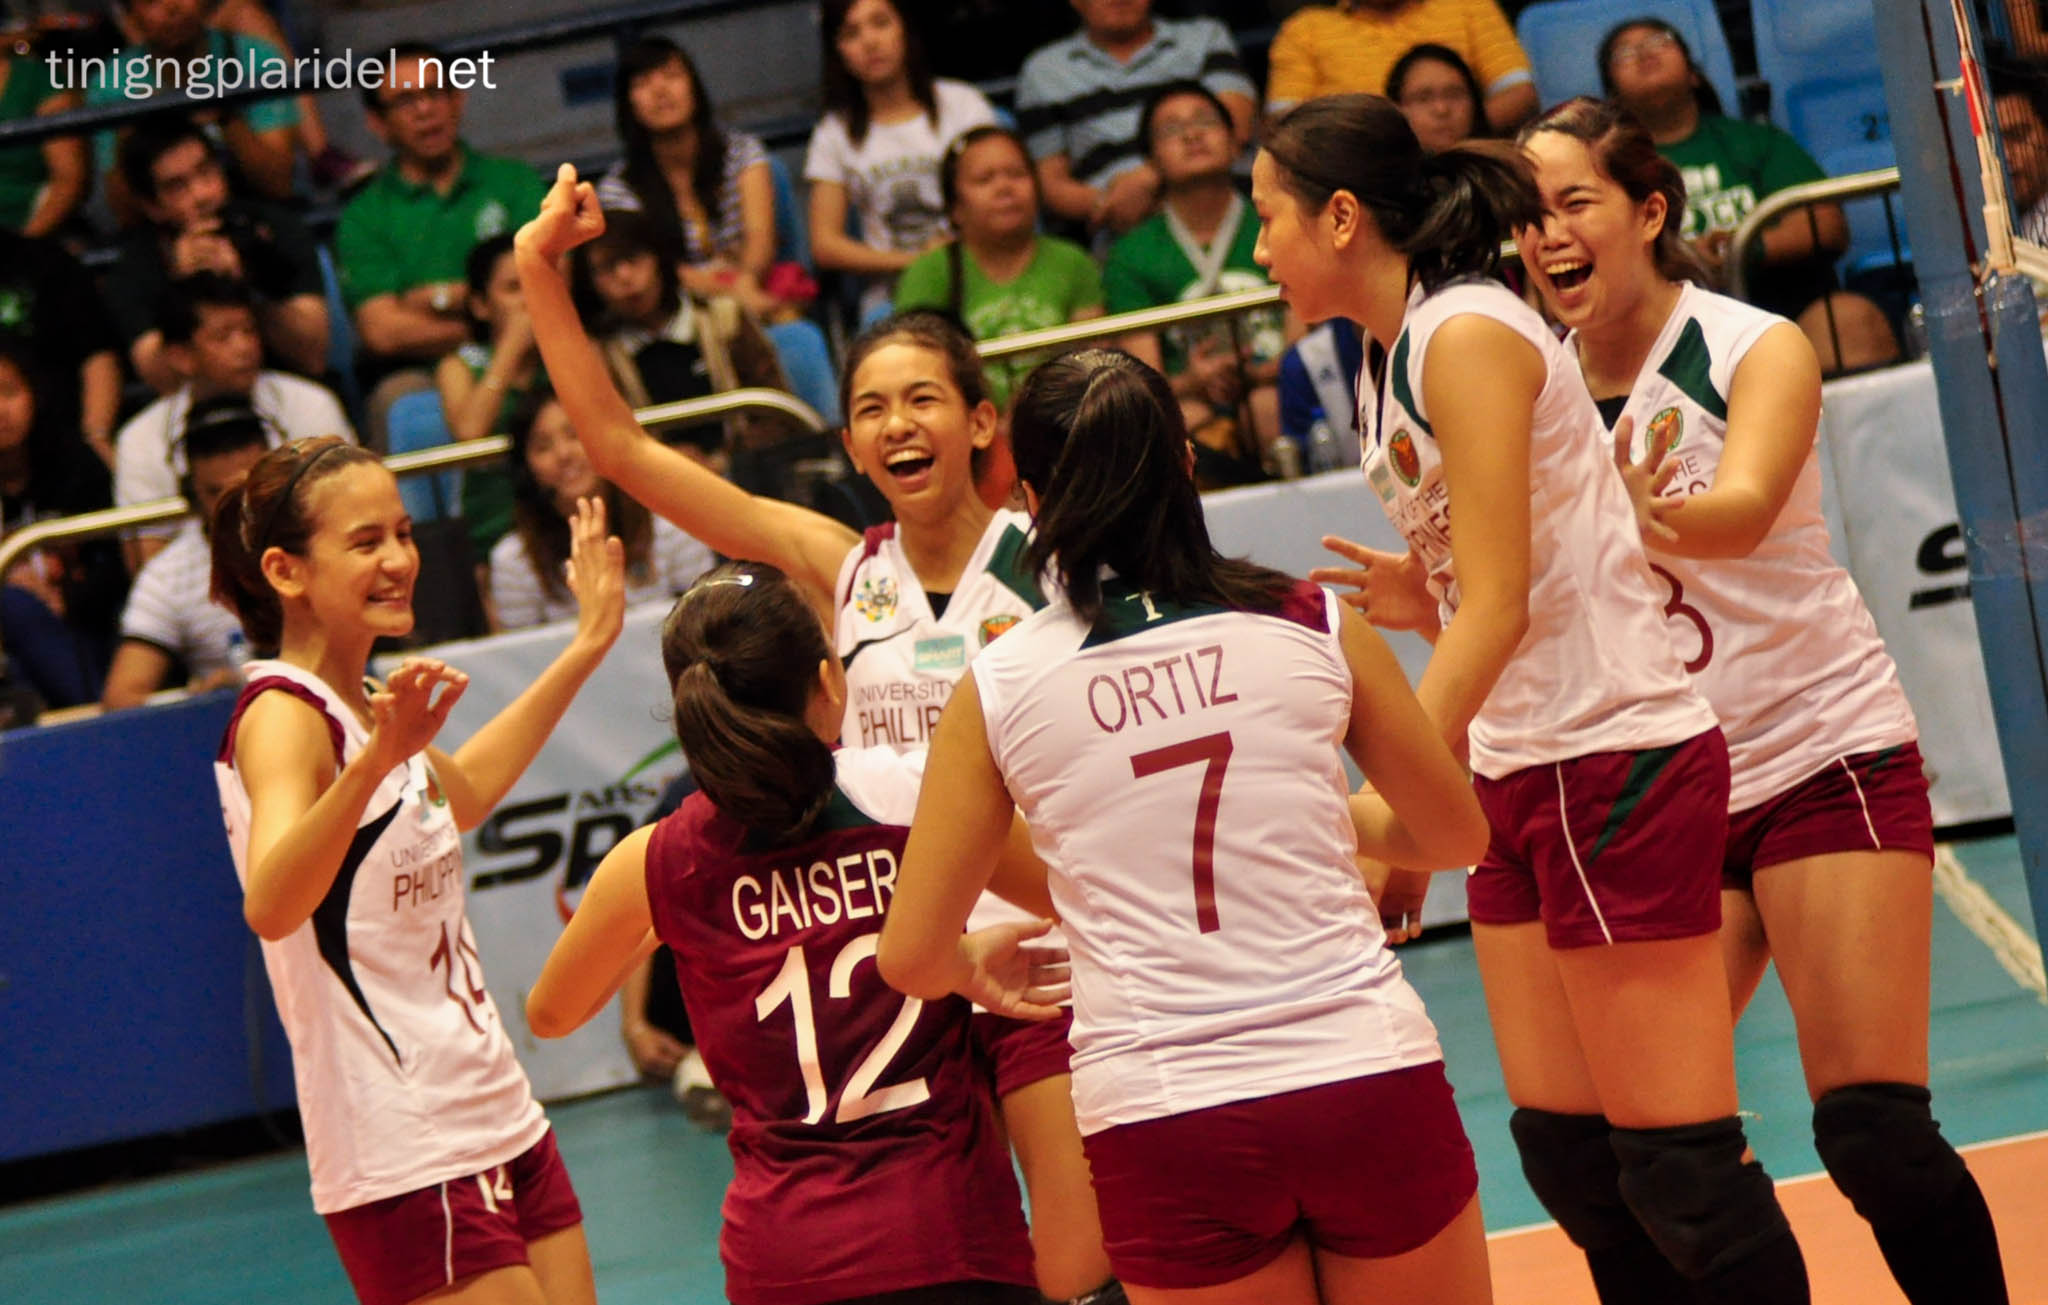 Lady Archers romp Maroons anew in UAAP Volleyball